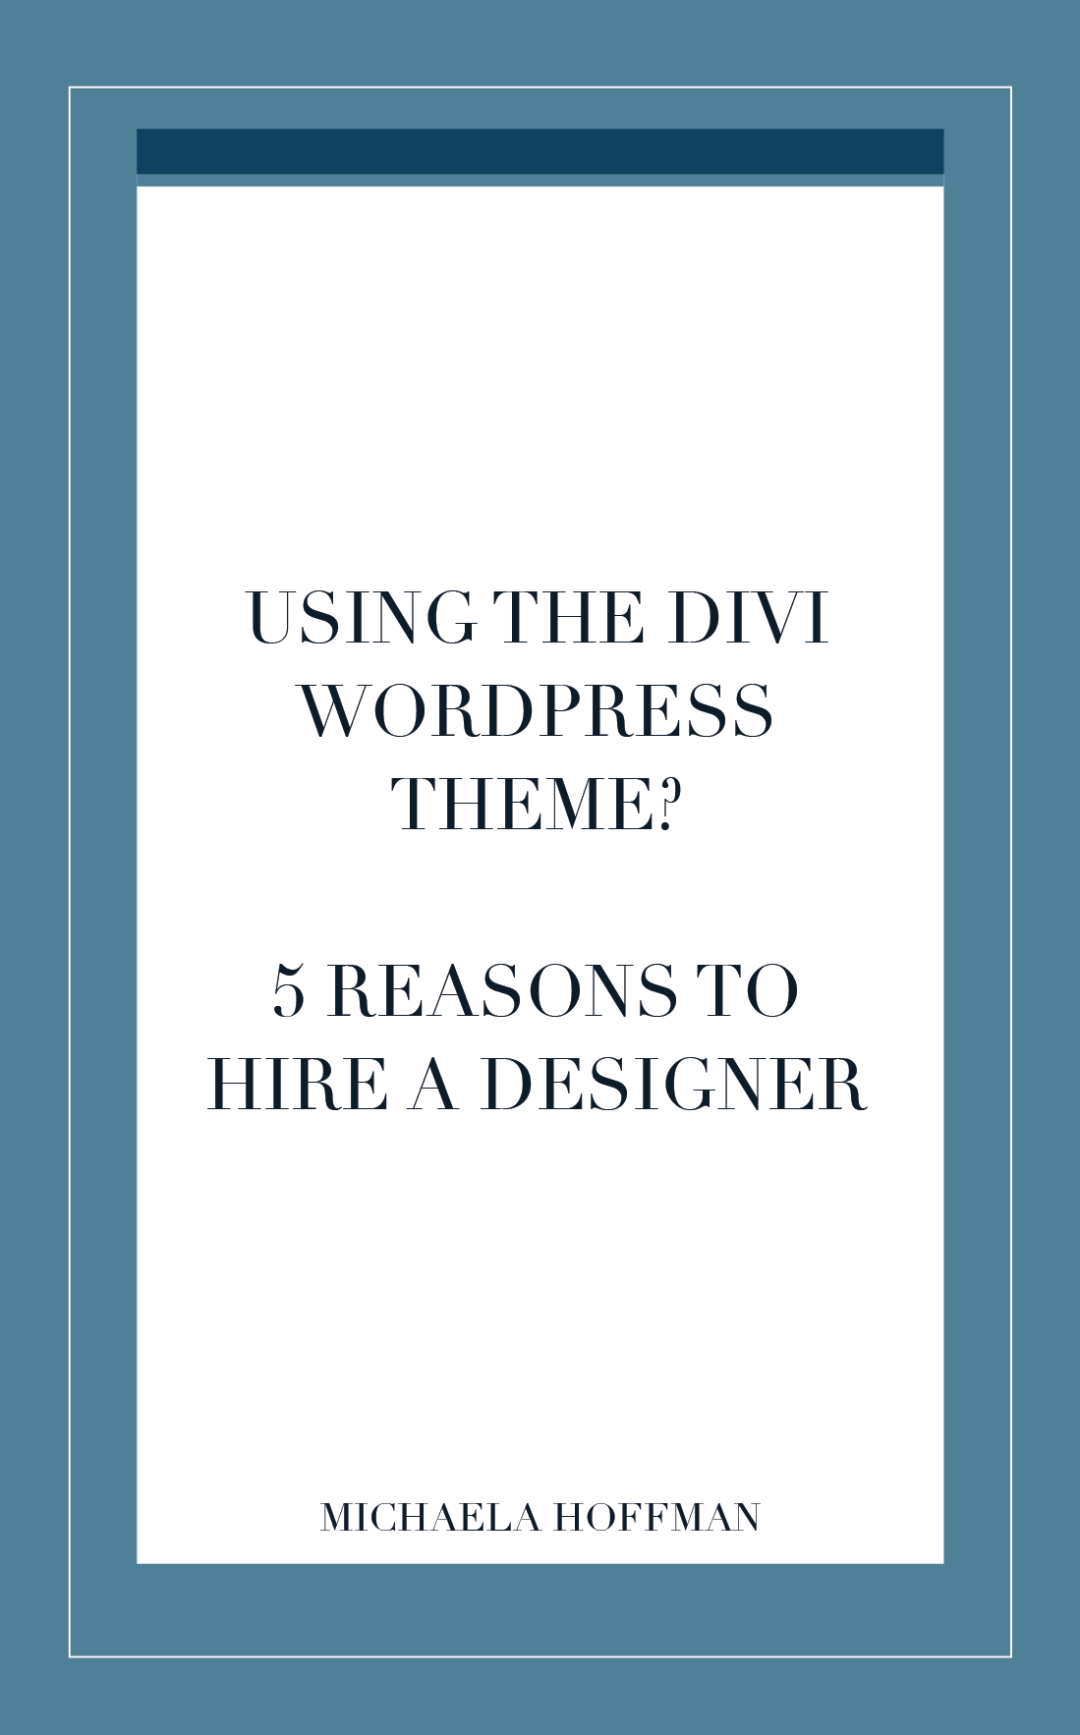 Are you a small business owner who is ready to tackle your website to grow your business? A web designer can help guide you in the best direction to connect with your audience, increase your visibility, and keep your business looking polished and professional online.